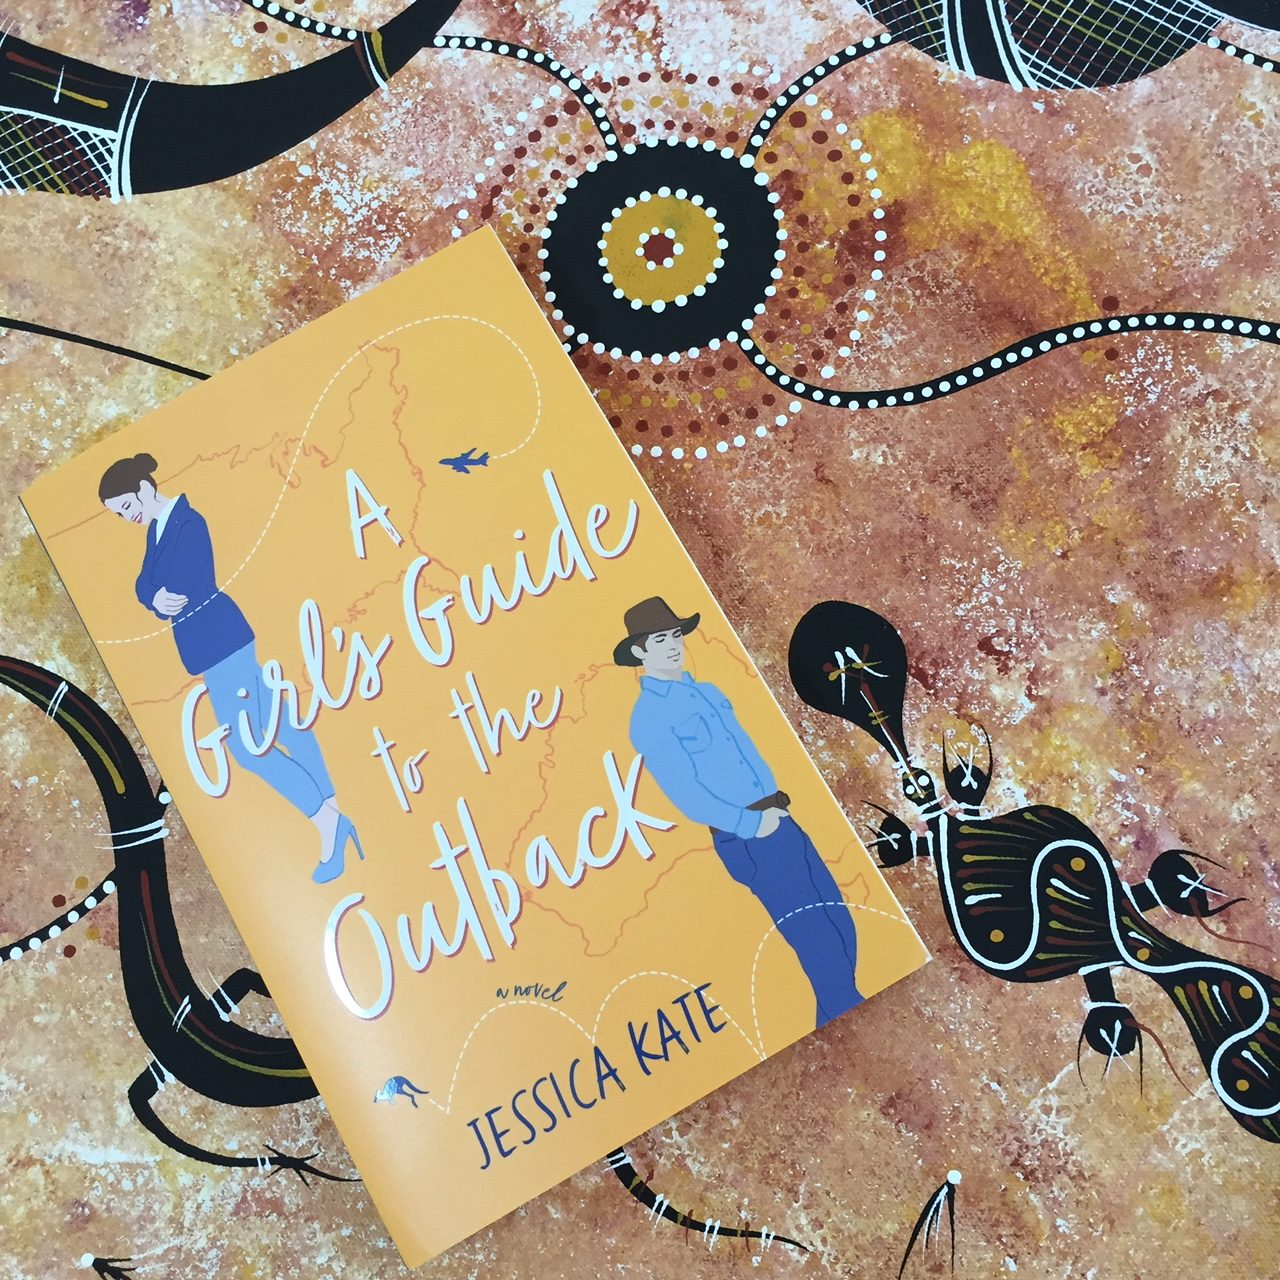 A Girl's Guide to the Outback, by Jessica Kate